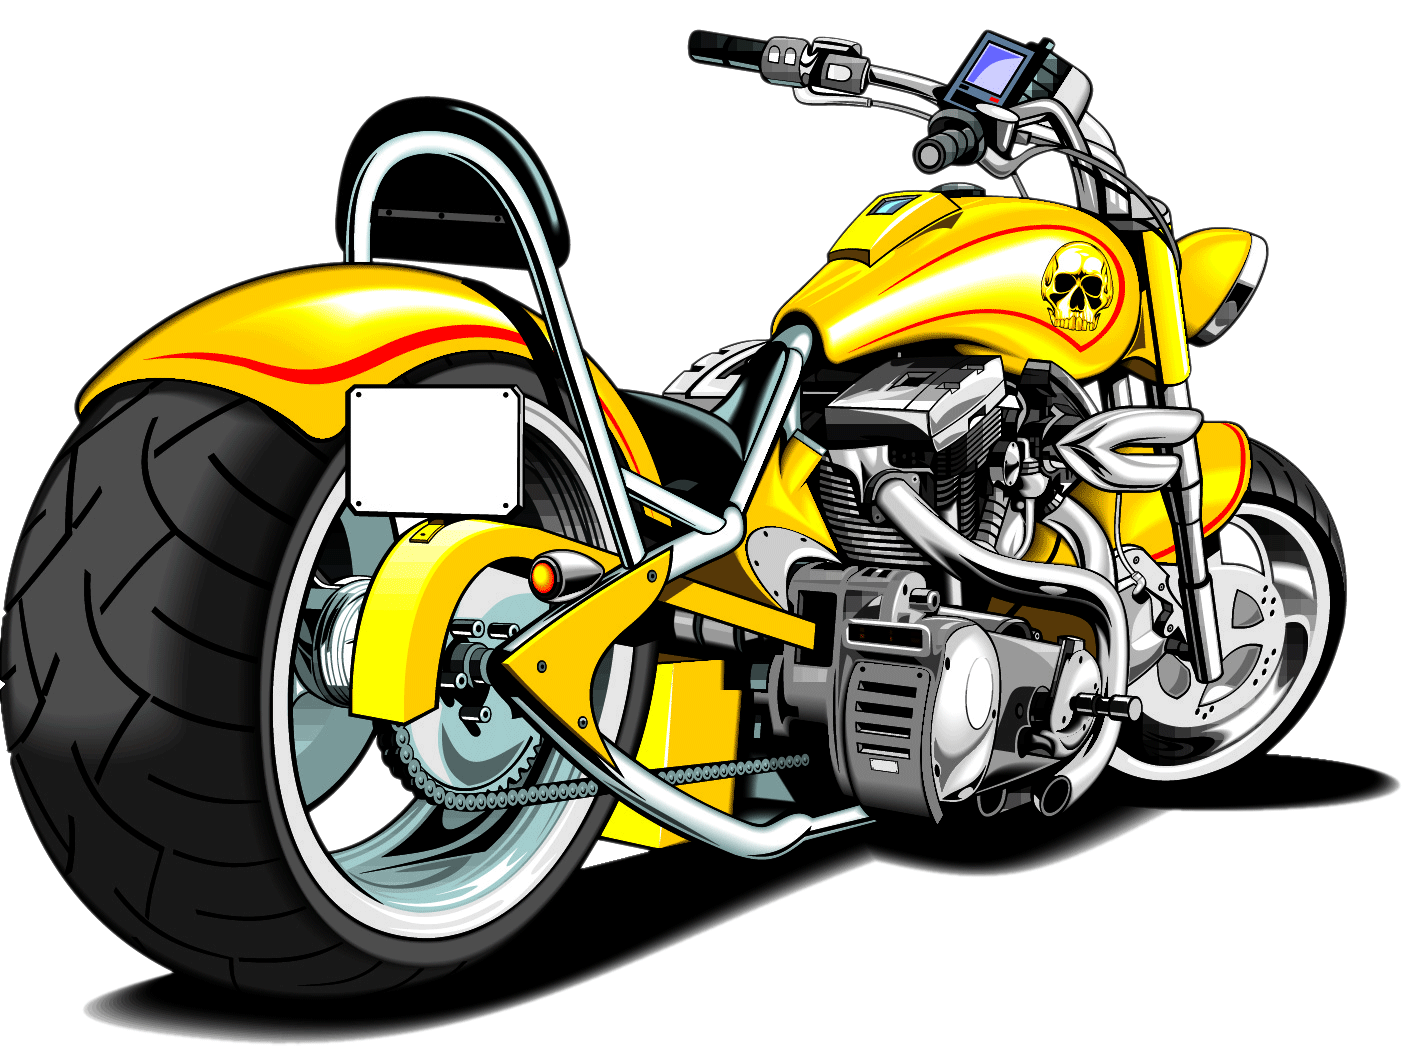 Harley davidson clipart free download picture royalty free library Harley Davidson Motorcycle Cliparts | Free download best Harley ... picture royalty free library